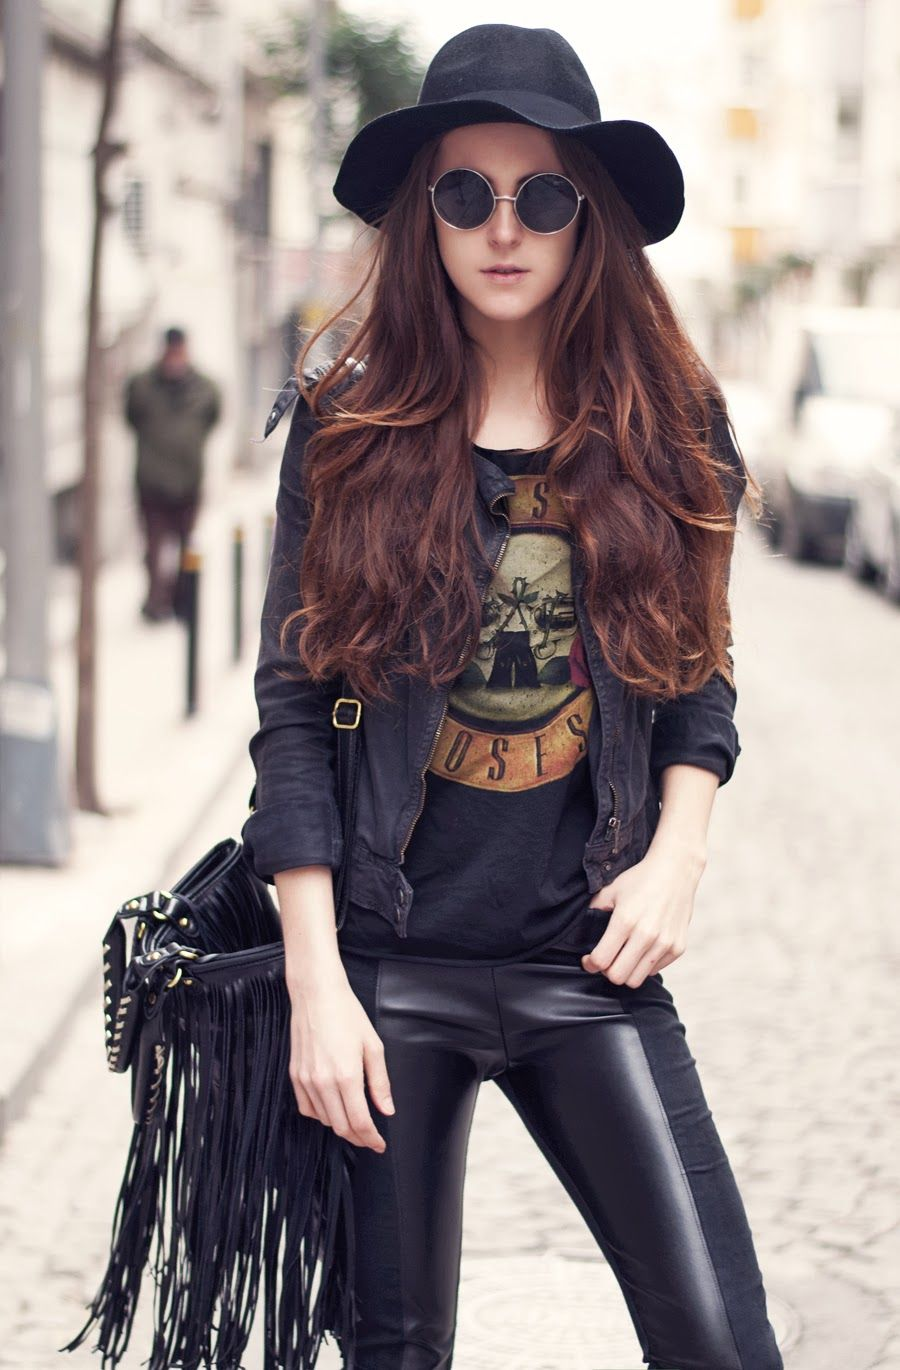 Rocker Outfit Street Style Guns And Rose Top Fedora